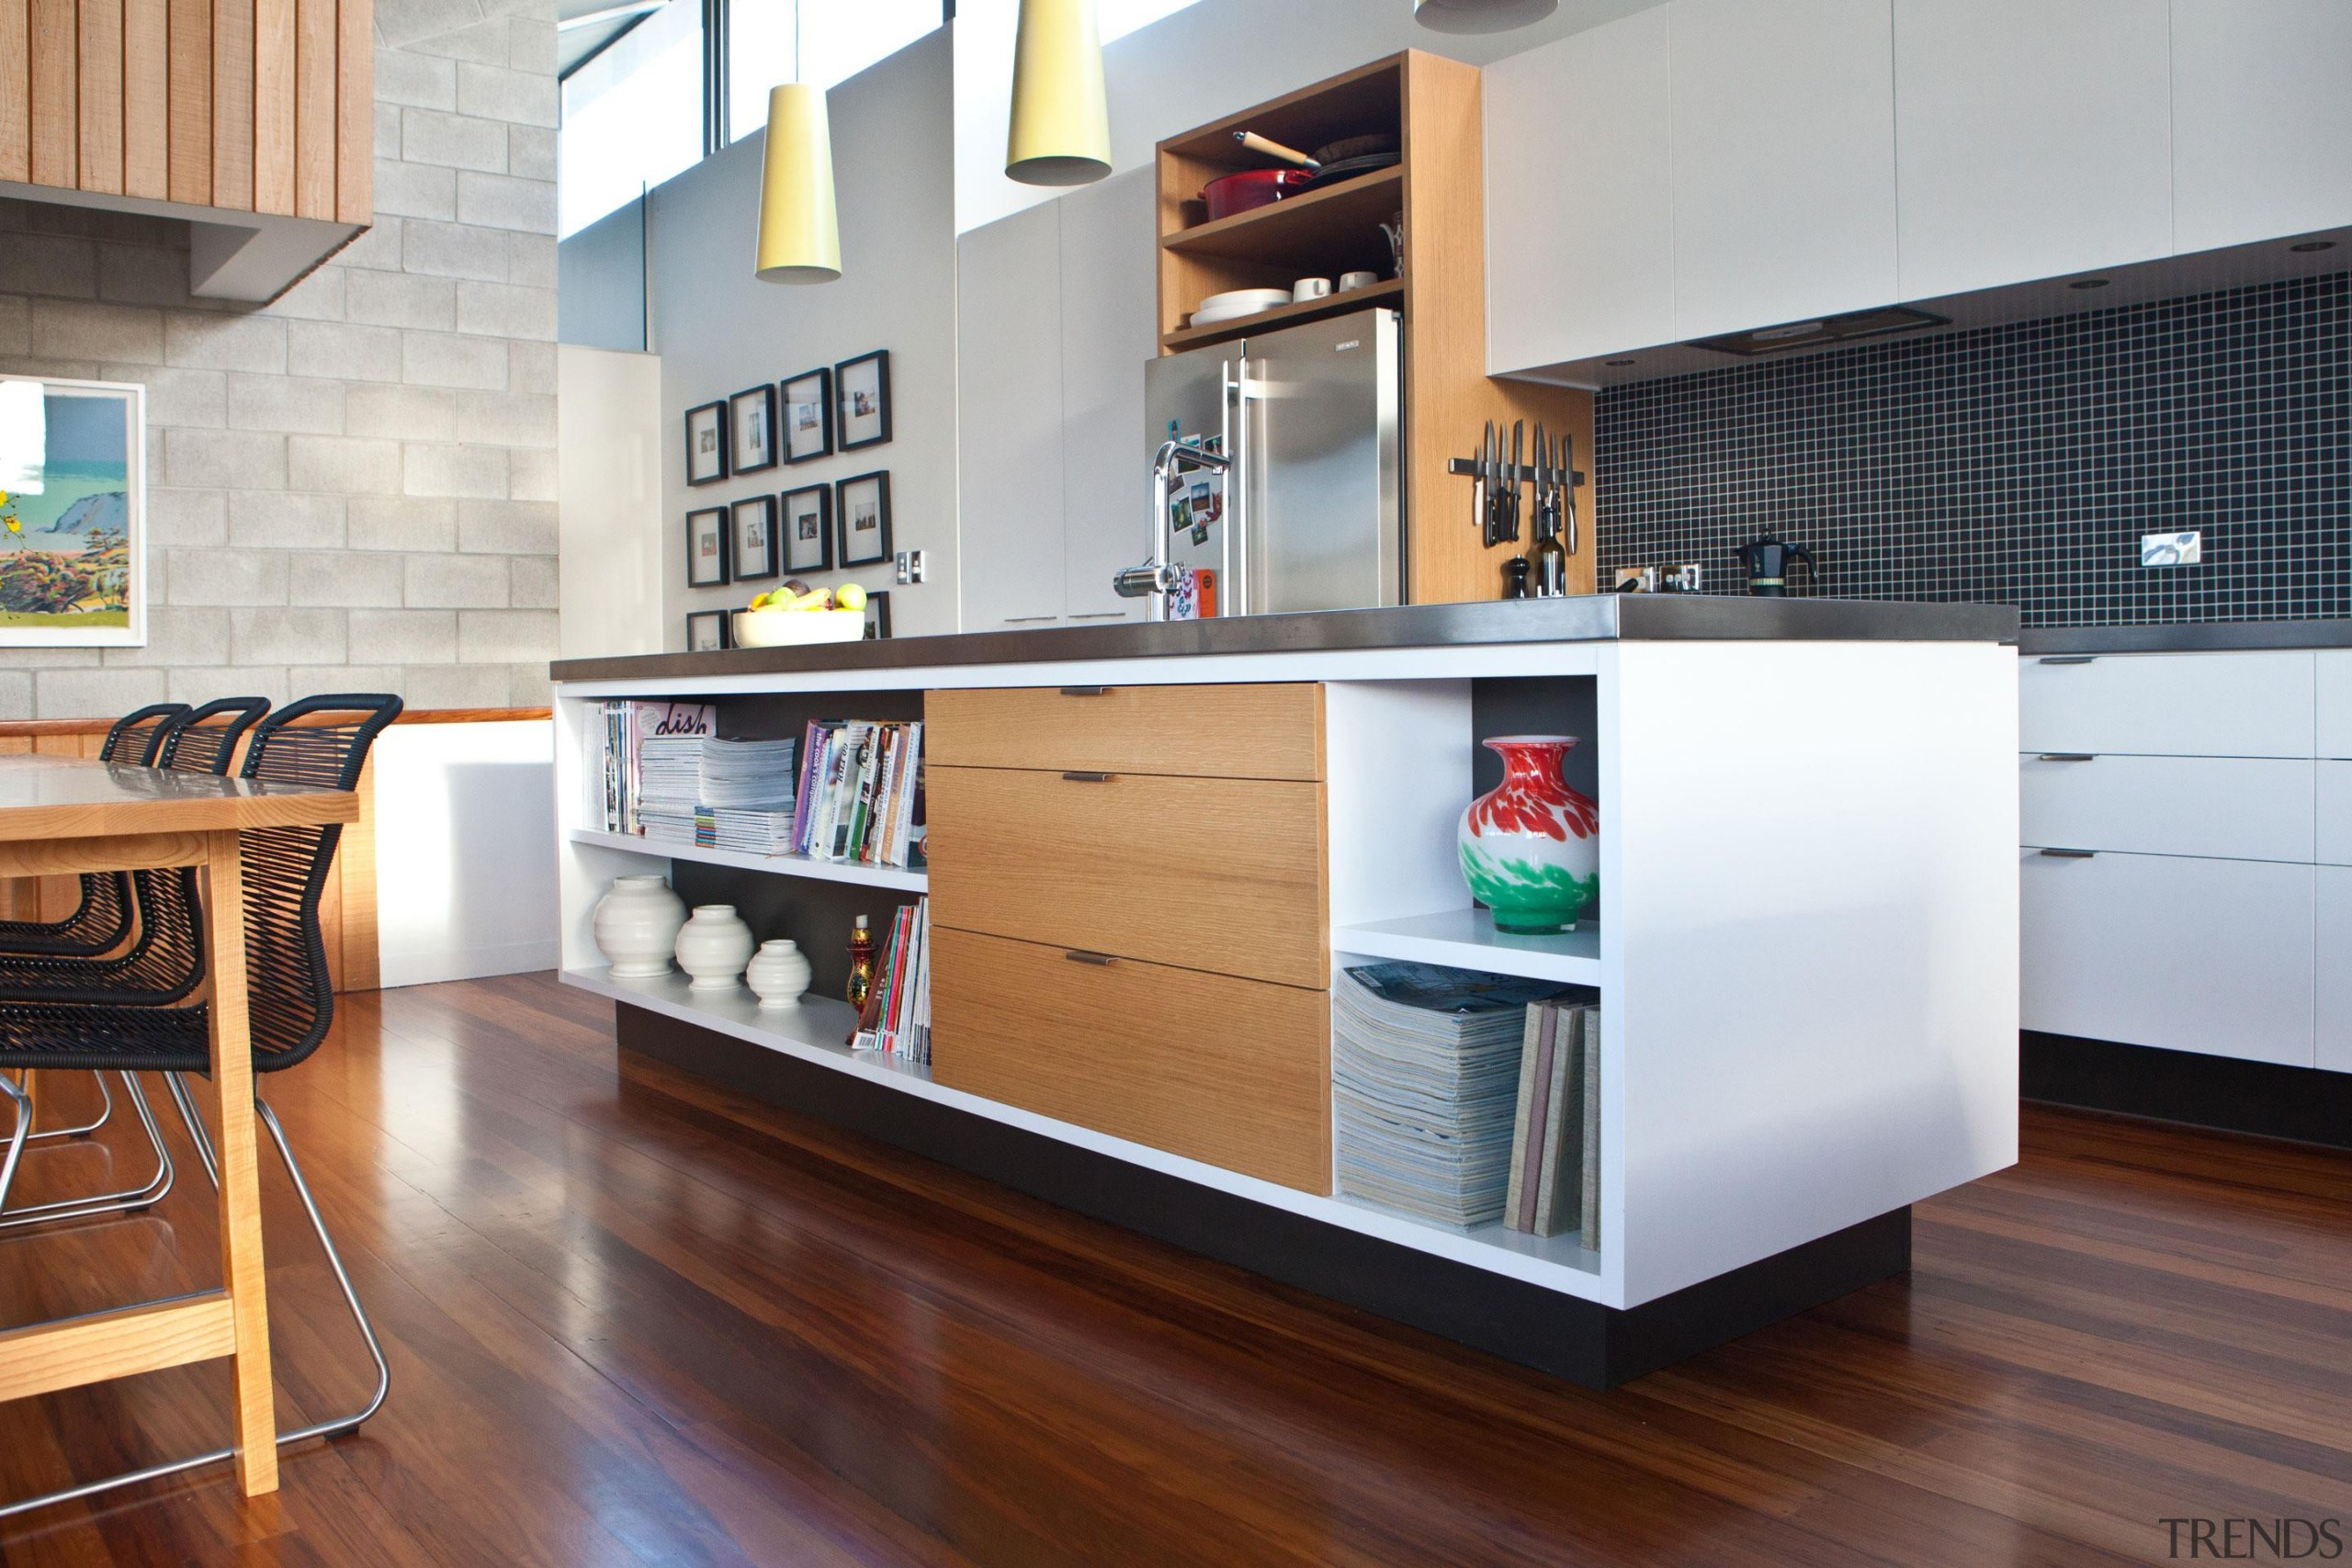 The kitchen island bench provides storage for both cabinetry, countertop, furniture, interior design, kitchen, white